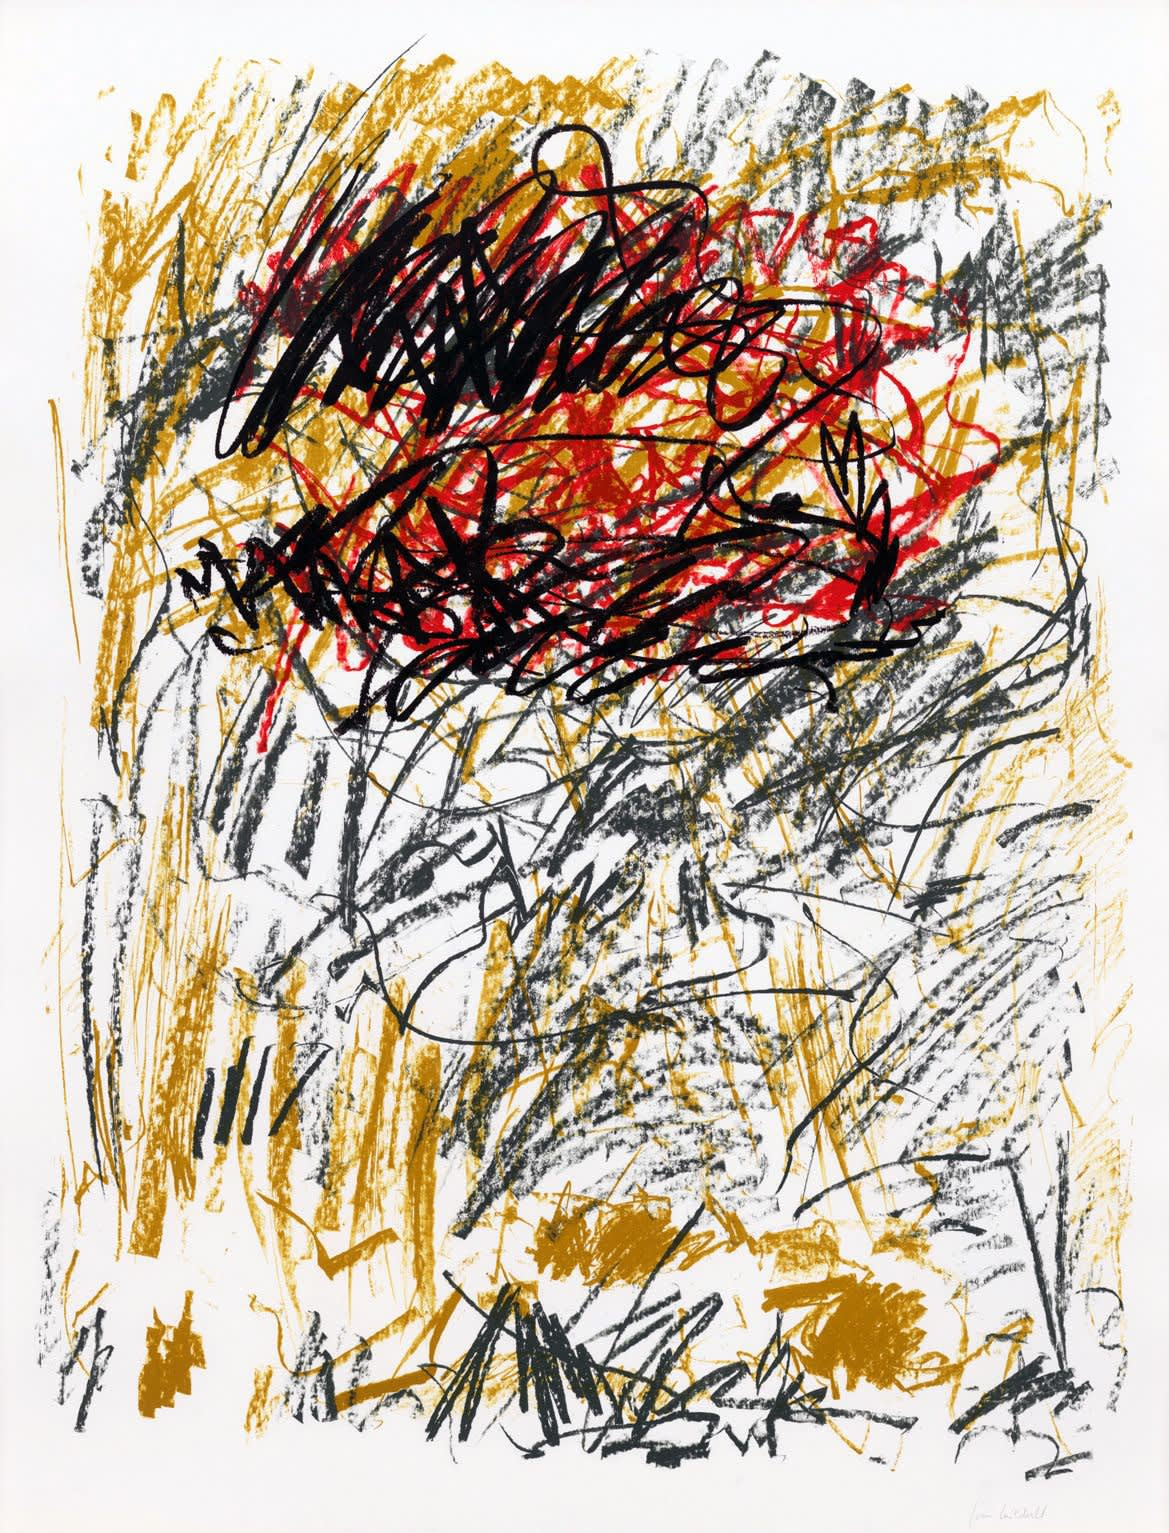 Joan Mitchell, Flower III, 1981